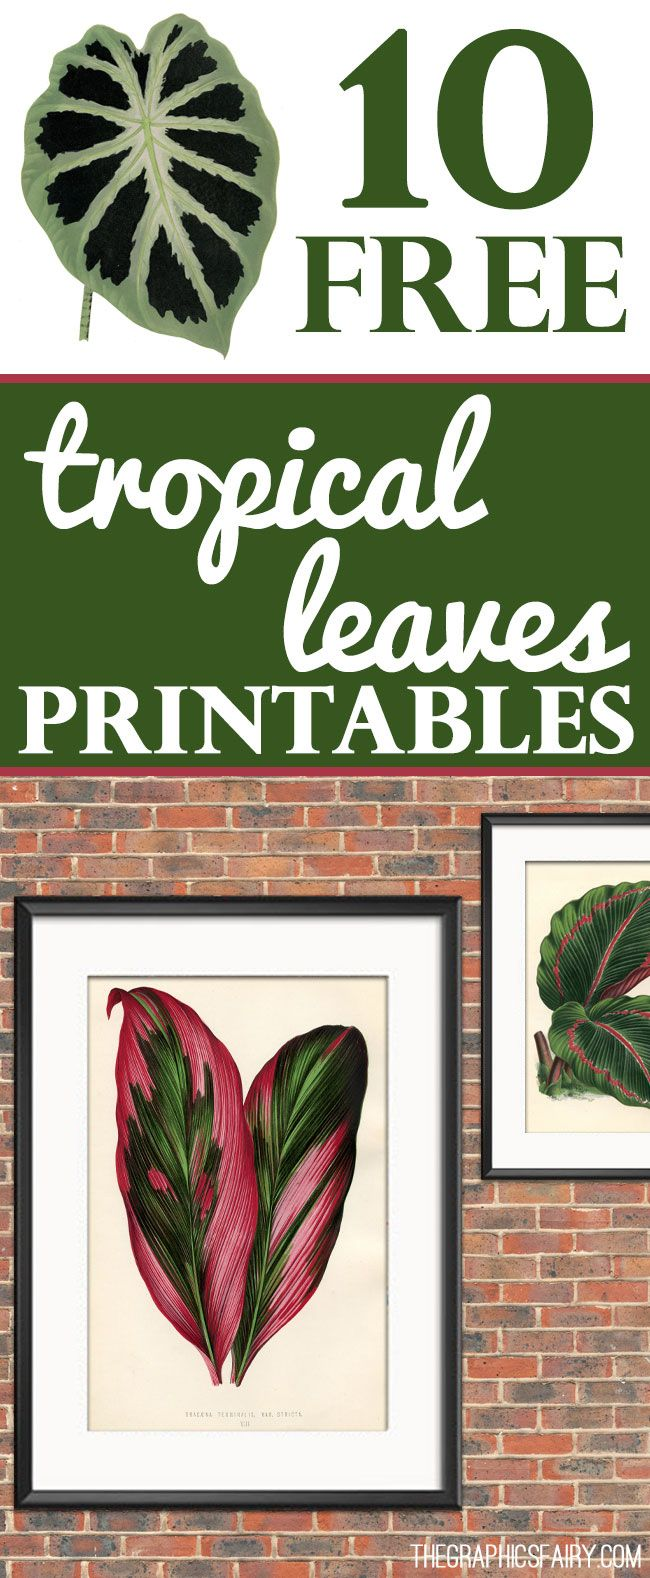 17 best ideas about framed botanical prints on pinterest vintage botanical prints botanical prints and vintage prints